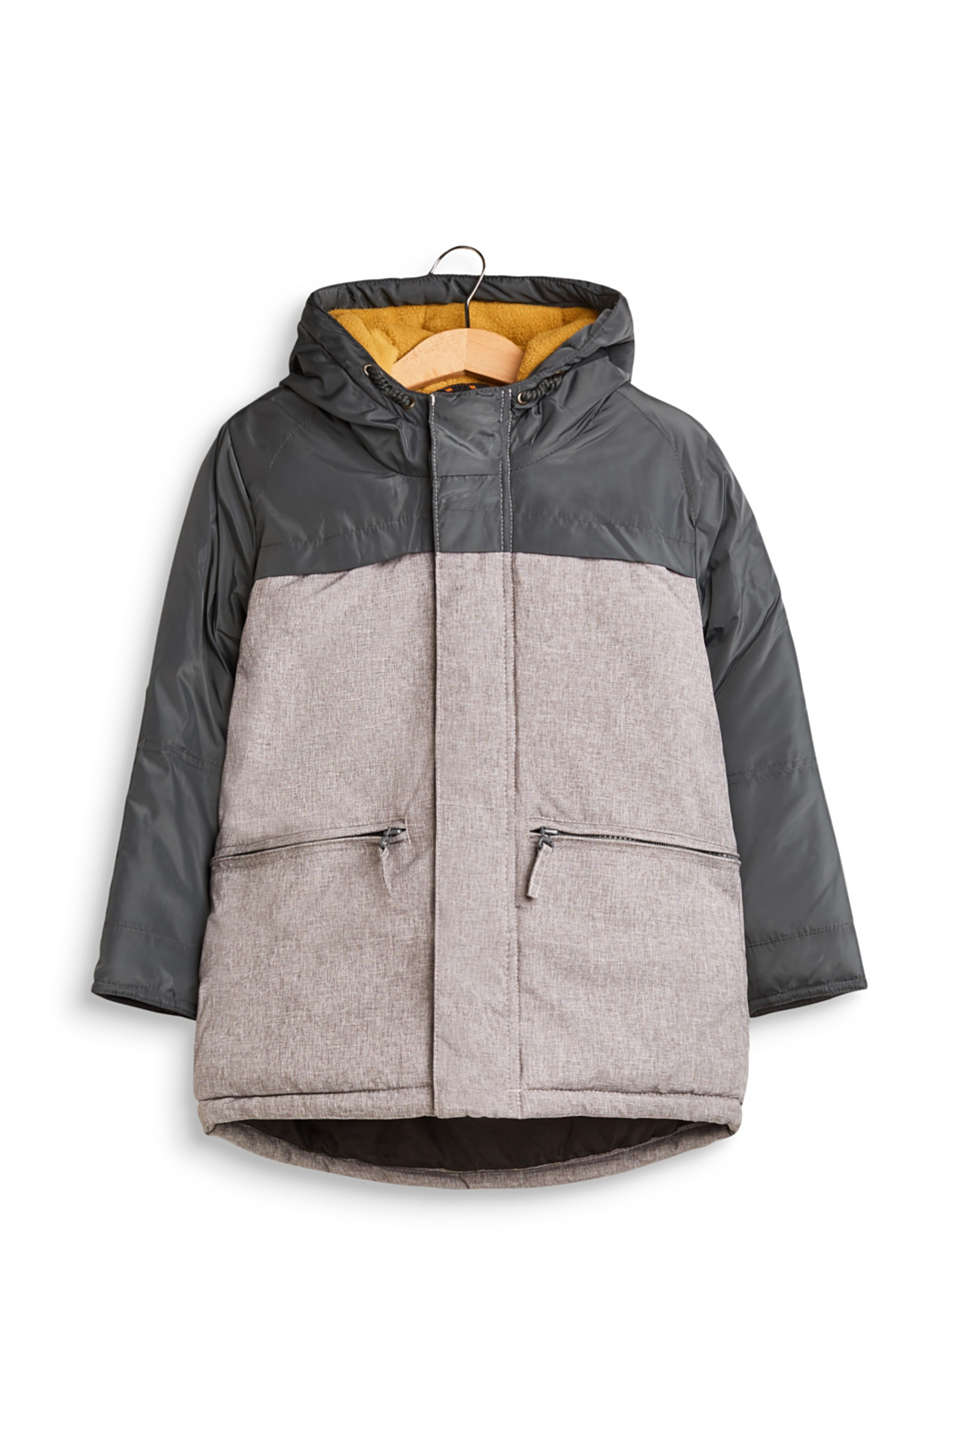 Esprit - Outdoor parka with a hood and pockets